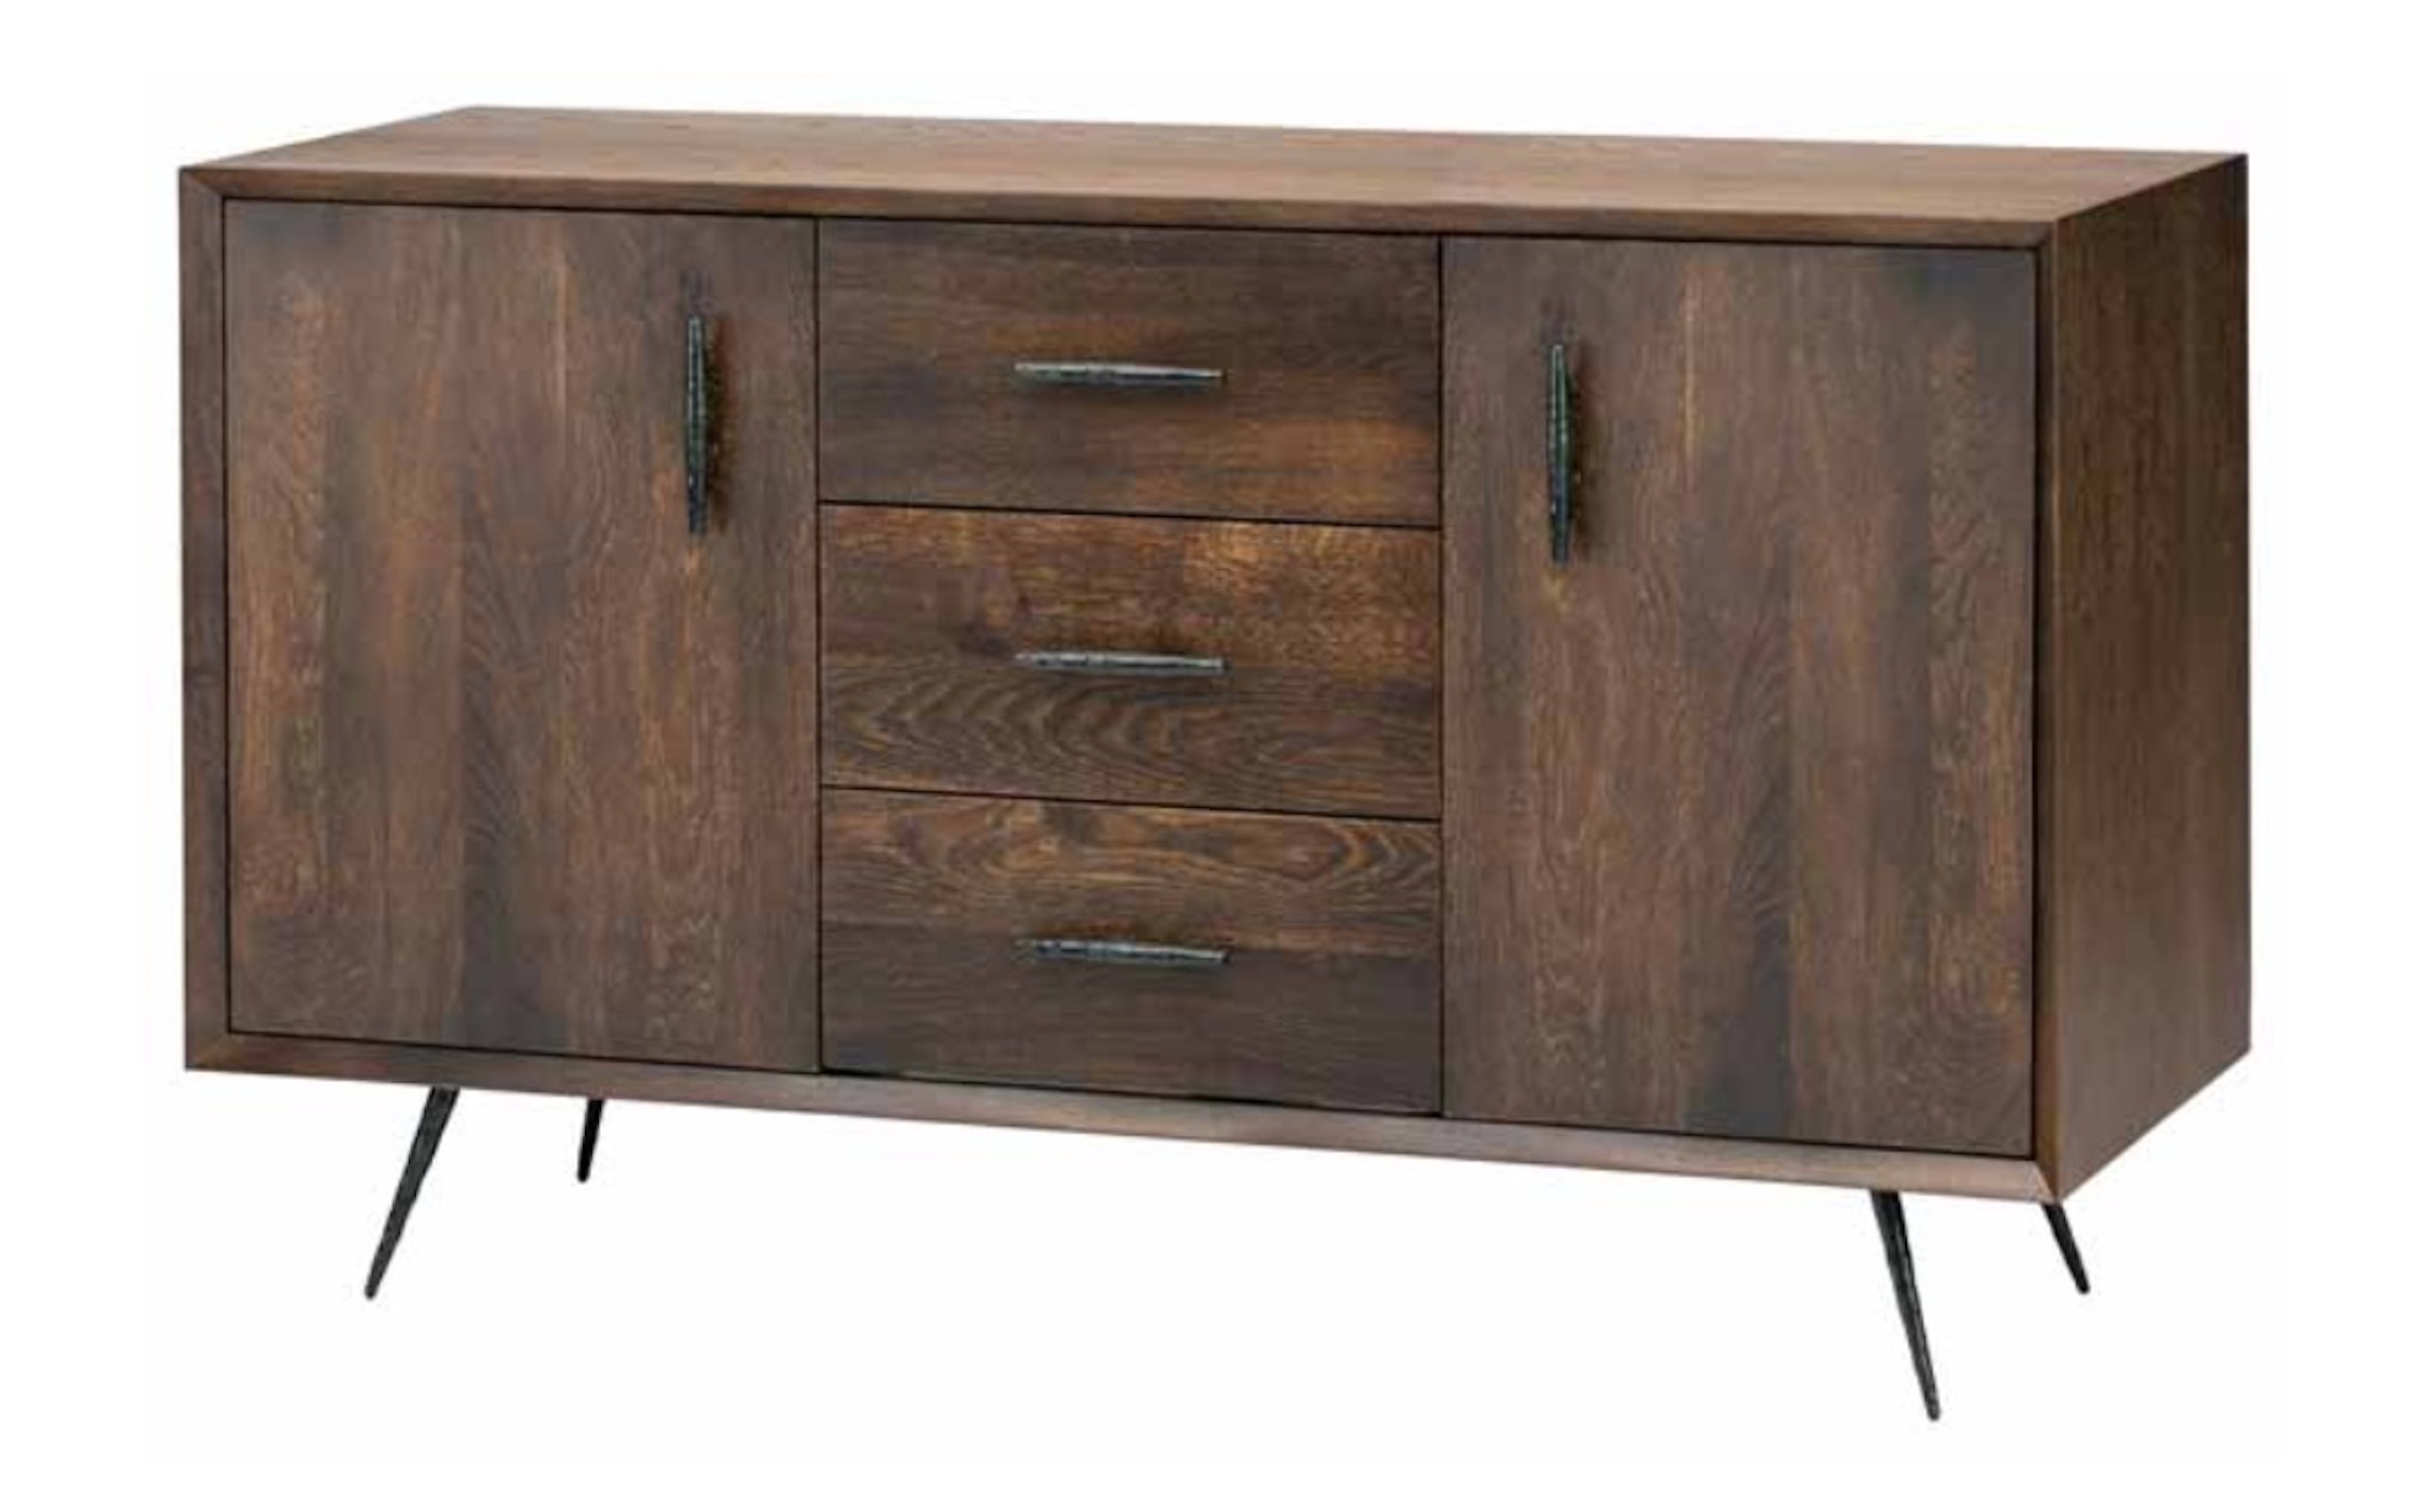 Nexa Sideboard Cabinet In Seared Oak And Black Cast Iron Legs Throughout Black Oak Wood And Wrought Iron Sideboards (Photo 1 of 30)